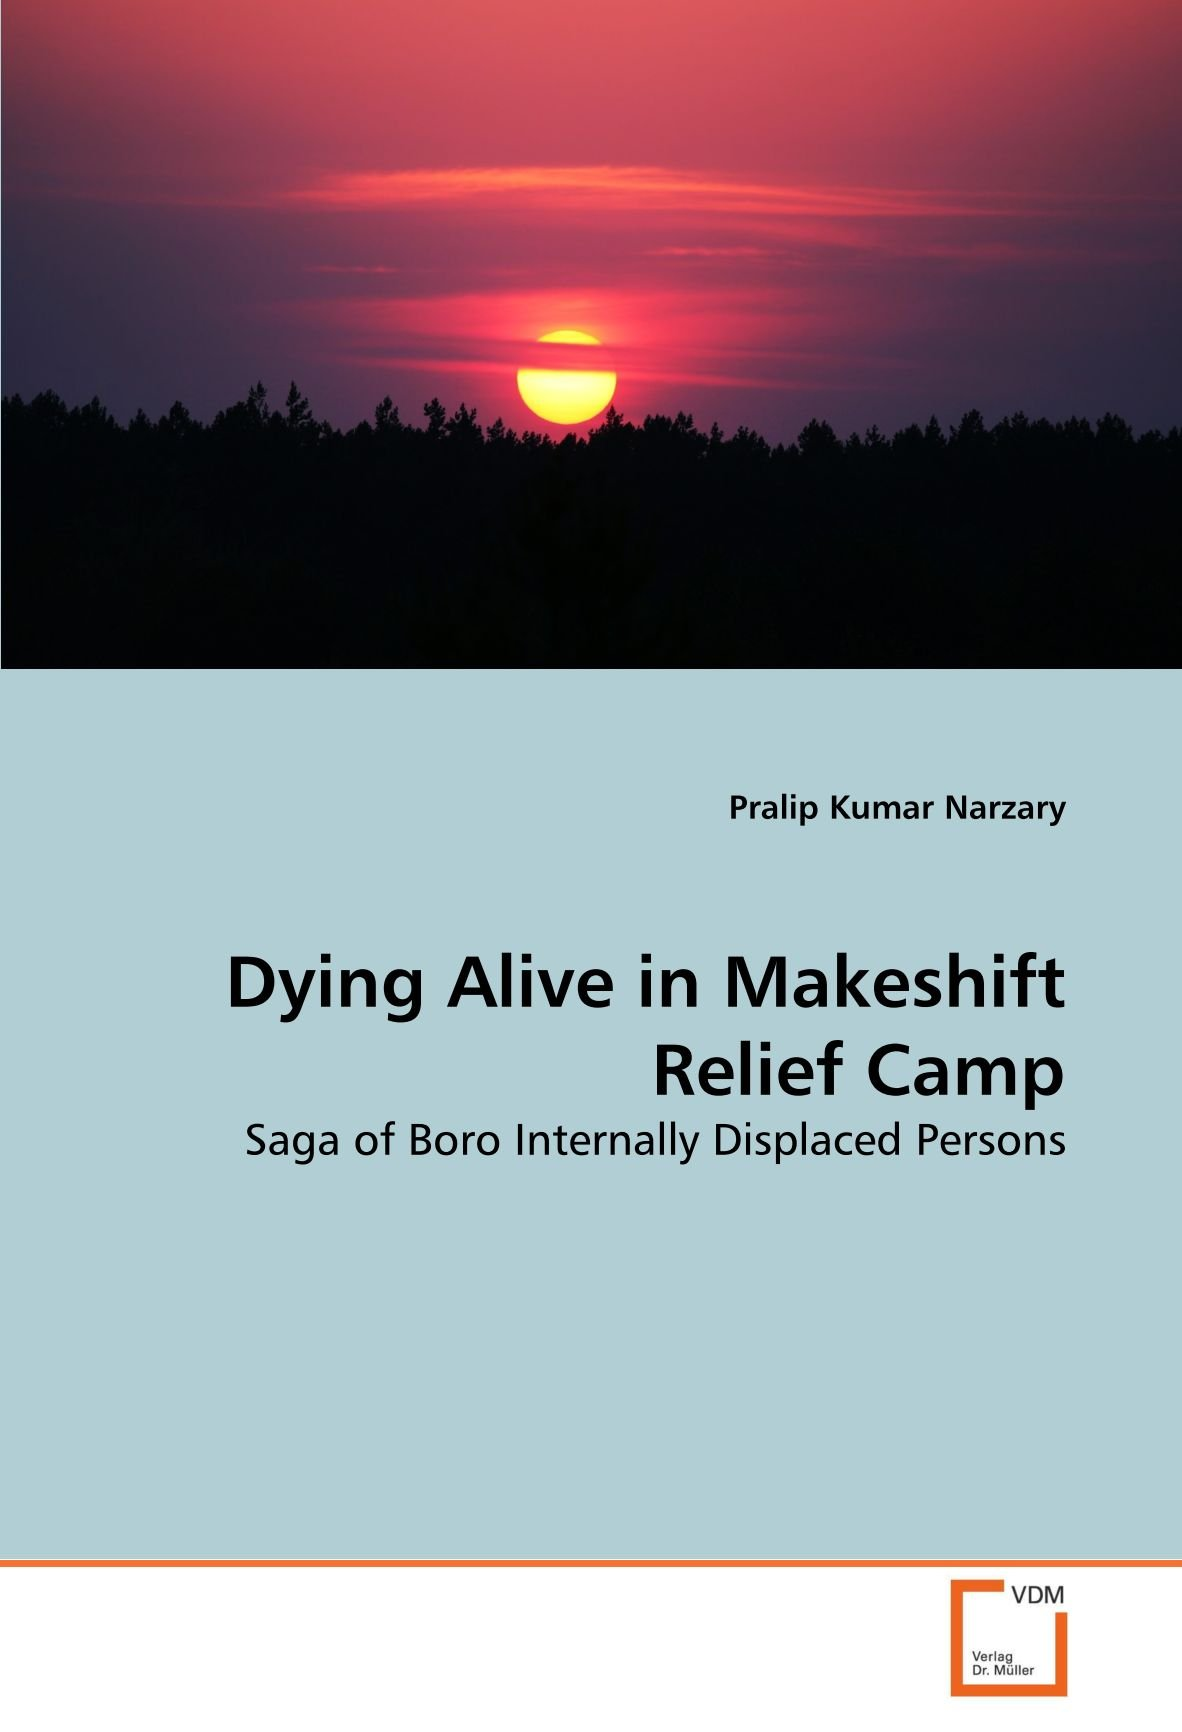 Dying Alive in Makeshift Relief Camp: Saga of Boro Internally Displaced Persons ebook